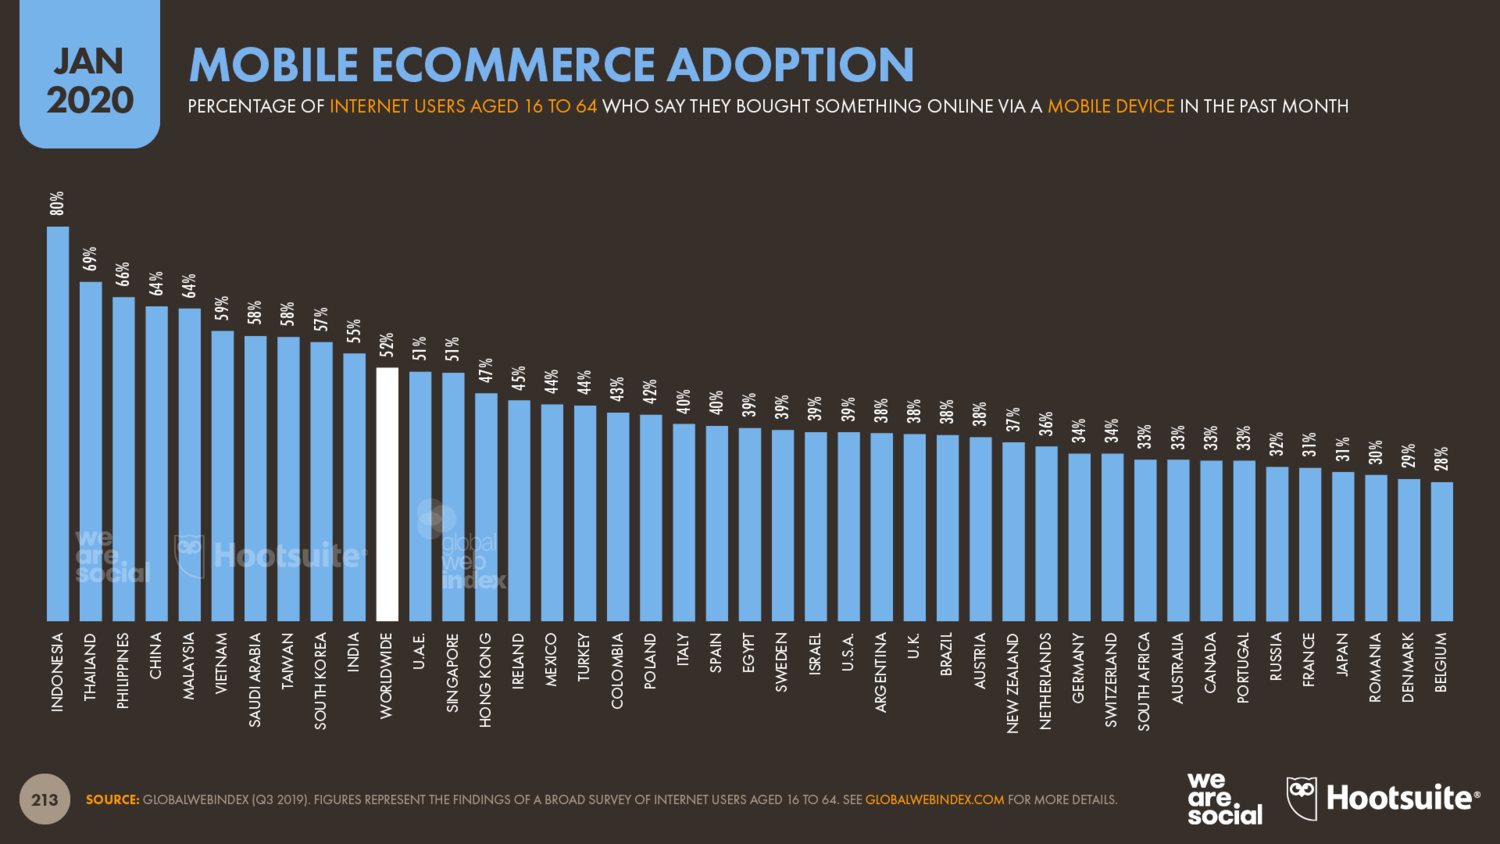 Mobile+Ecommerce+Adoption+by+Country+January+2020